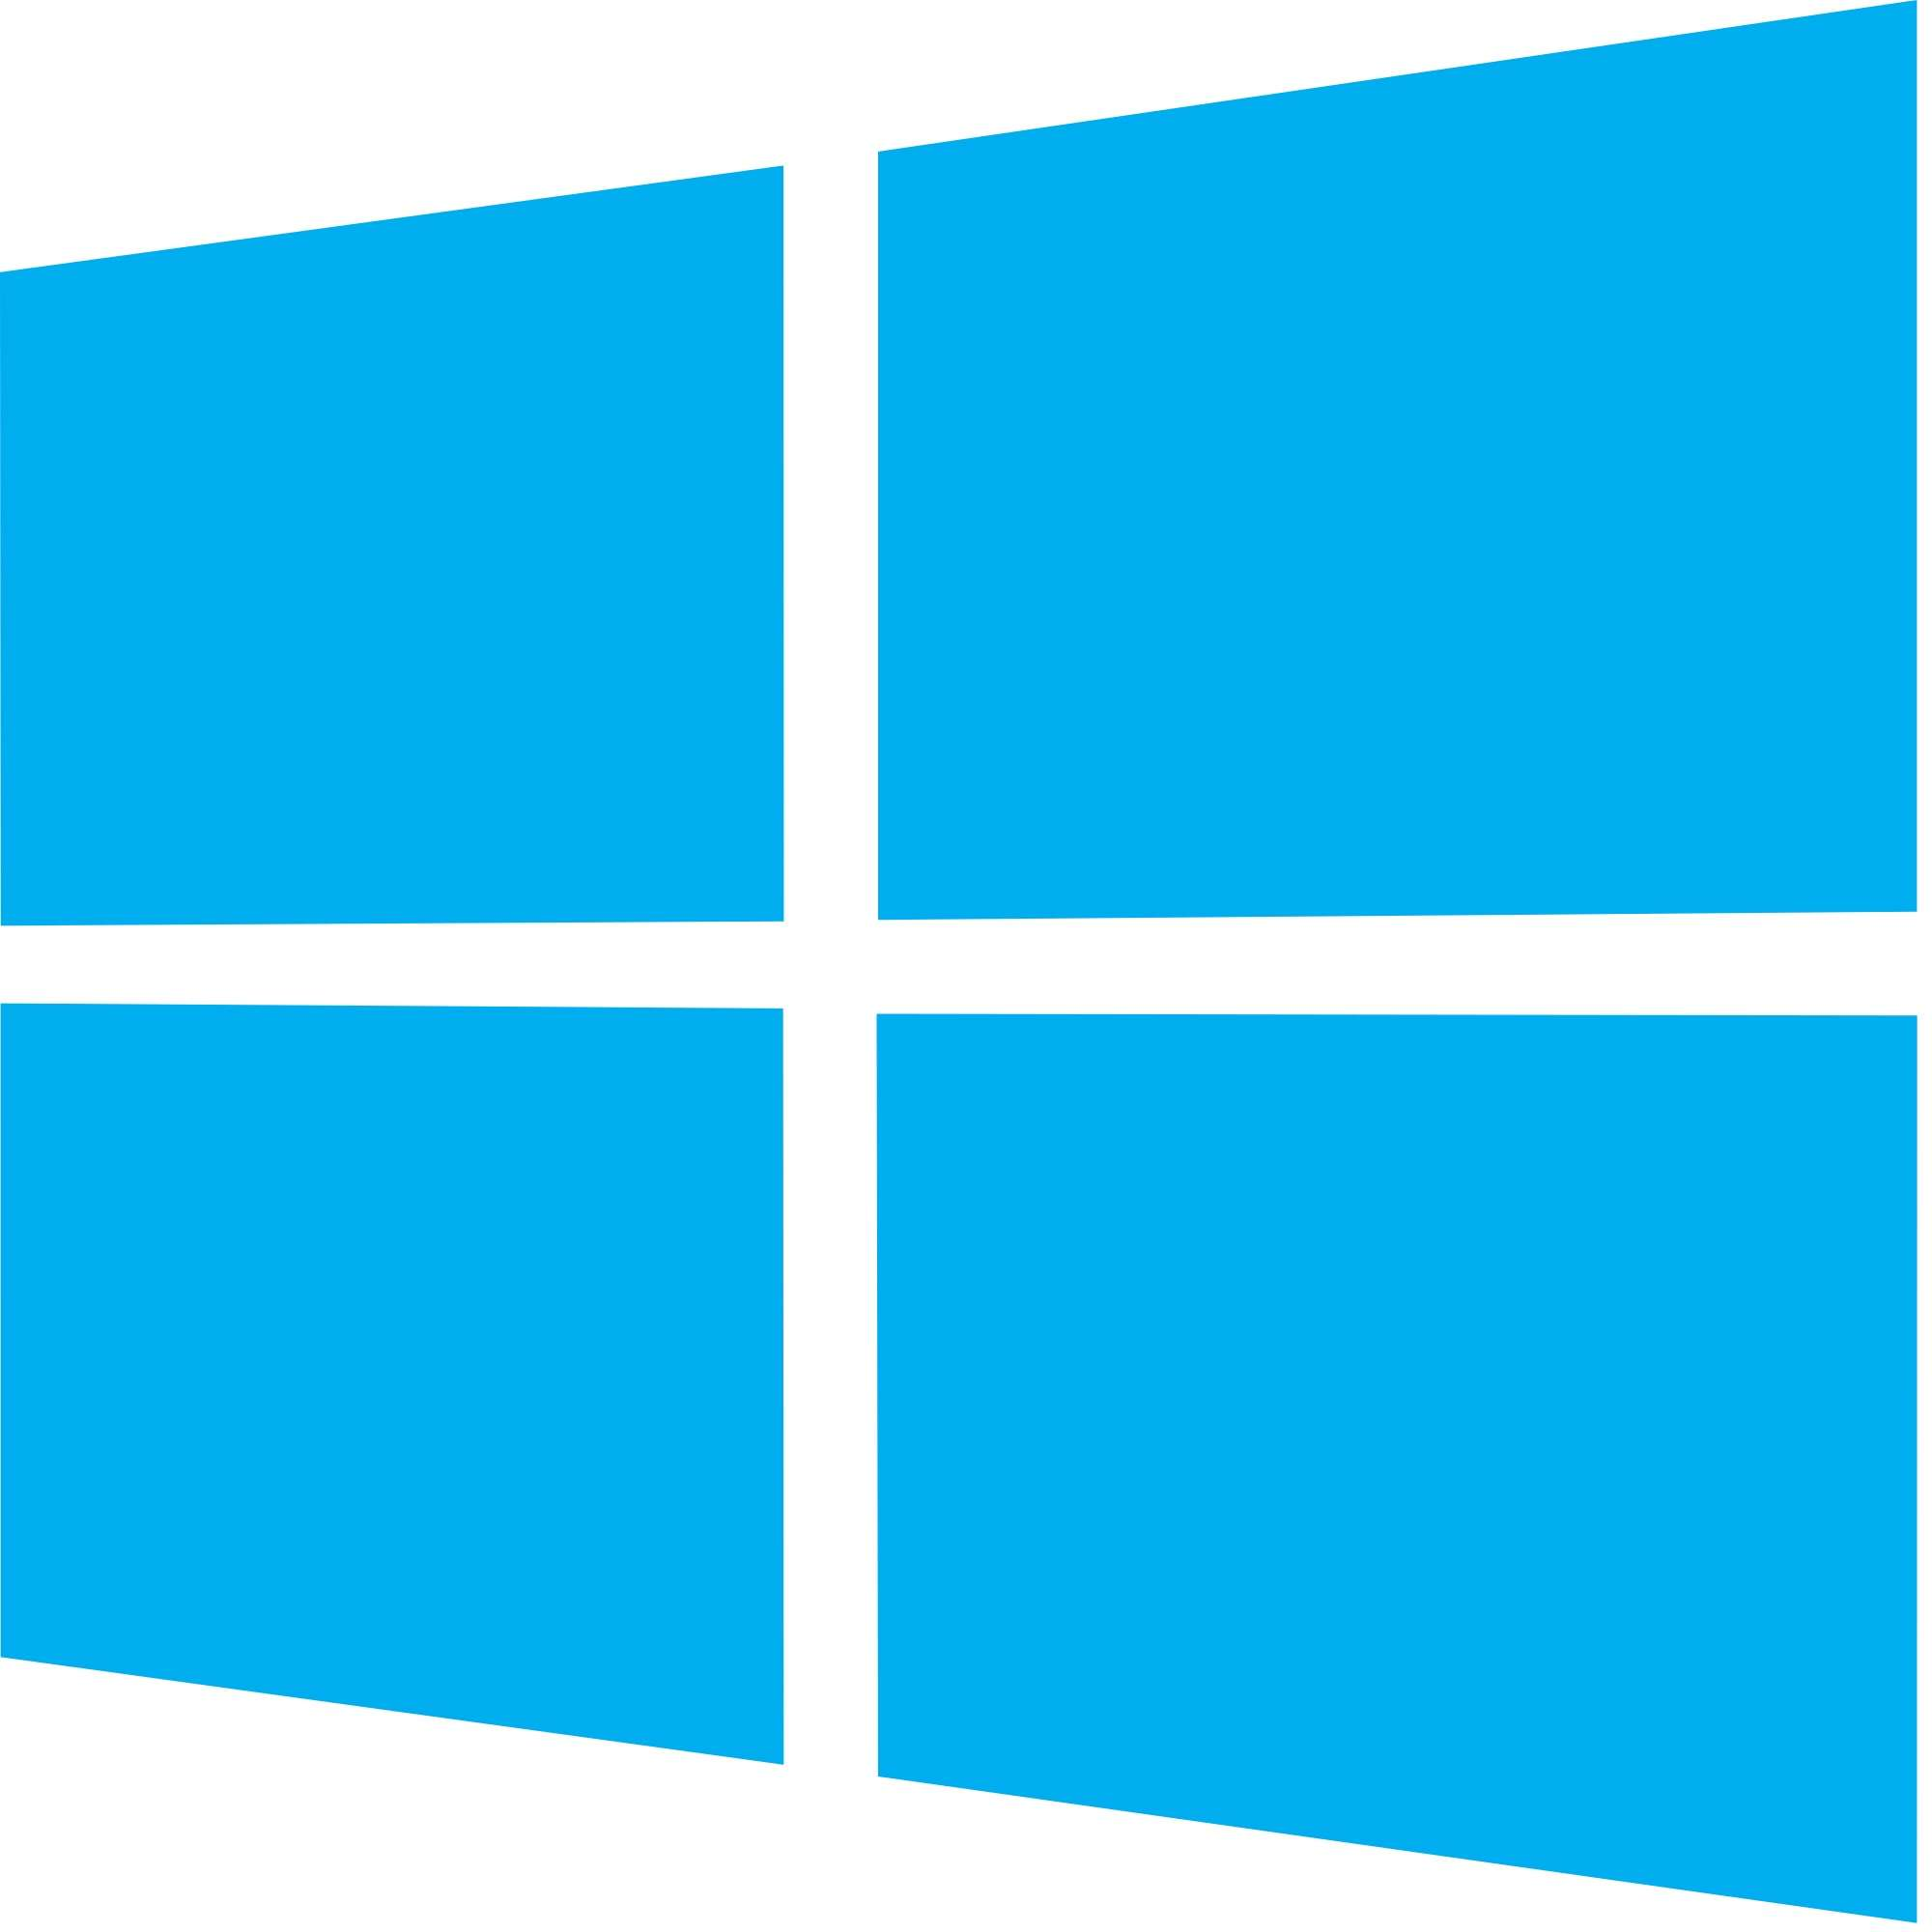 Add features and roles to Windows 2012 Core fails – gotcha